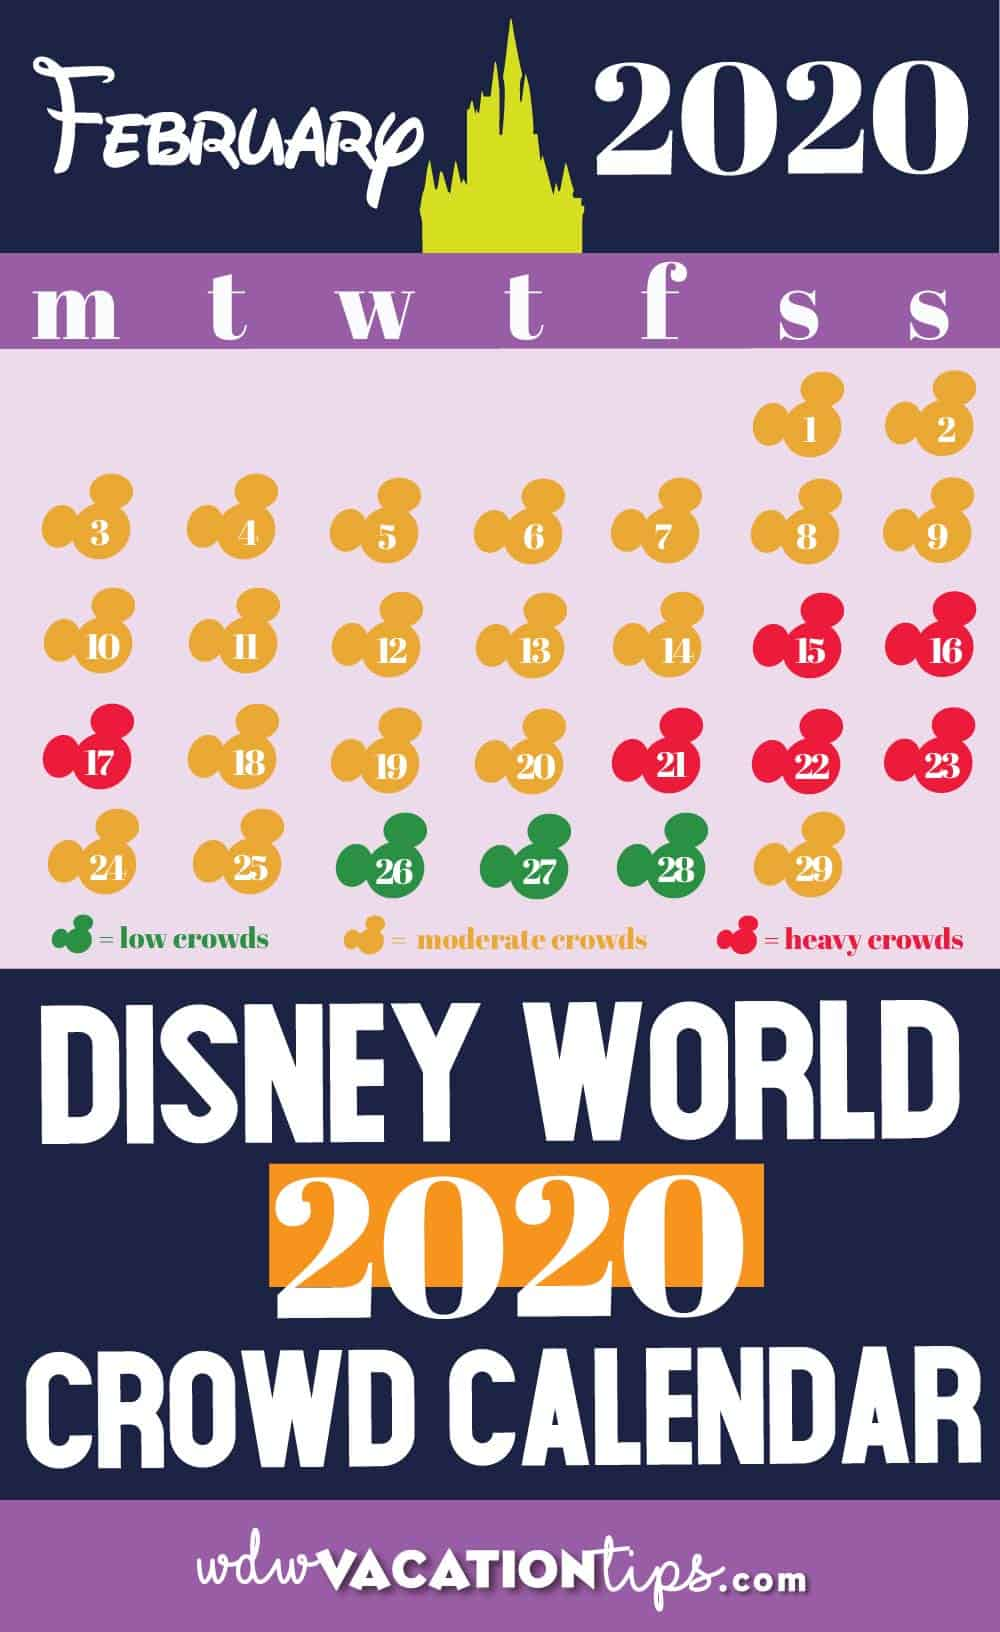 Disney World Crowd Calendar for 2020 1